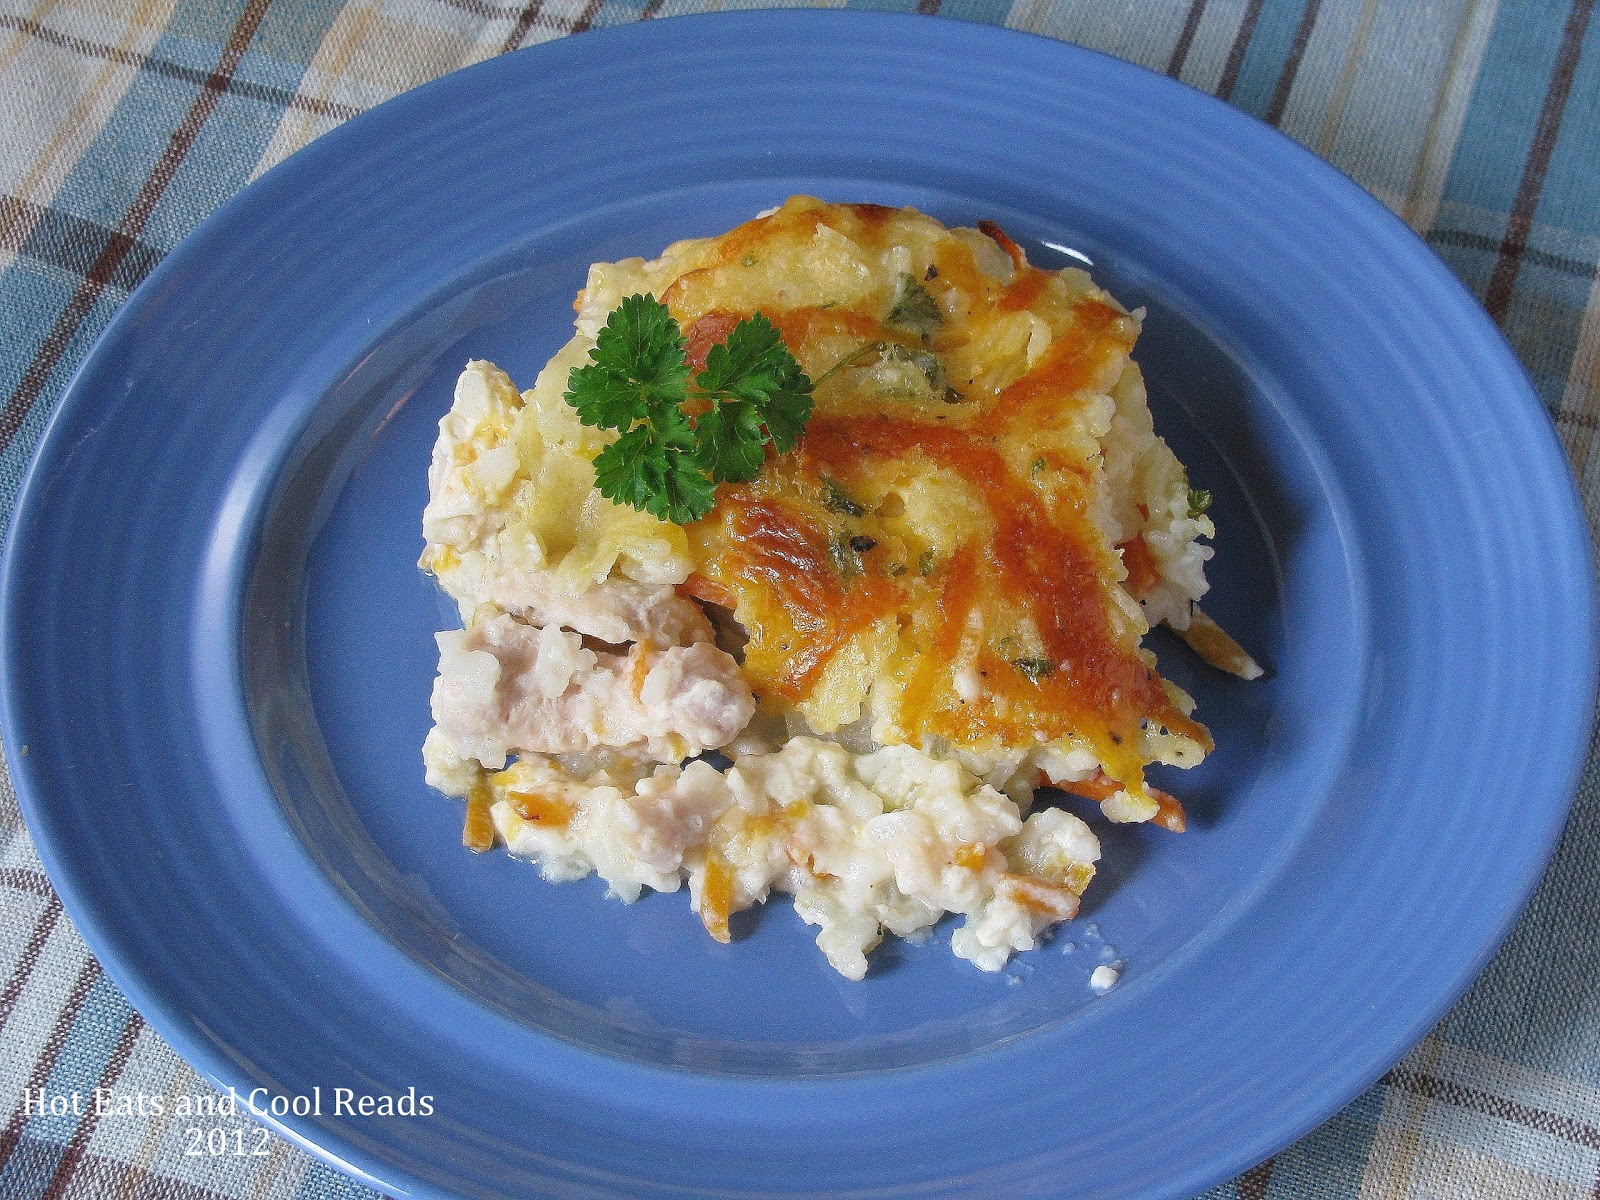 Hot Eats and Cool Reads: Chicken and Rice Casserole Recipe From ...